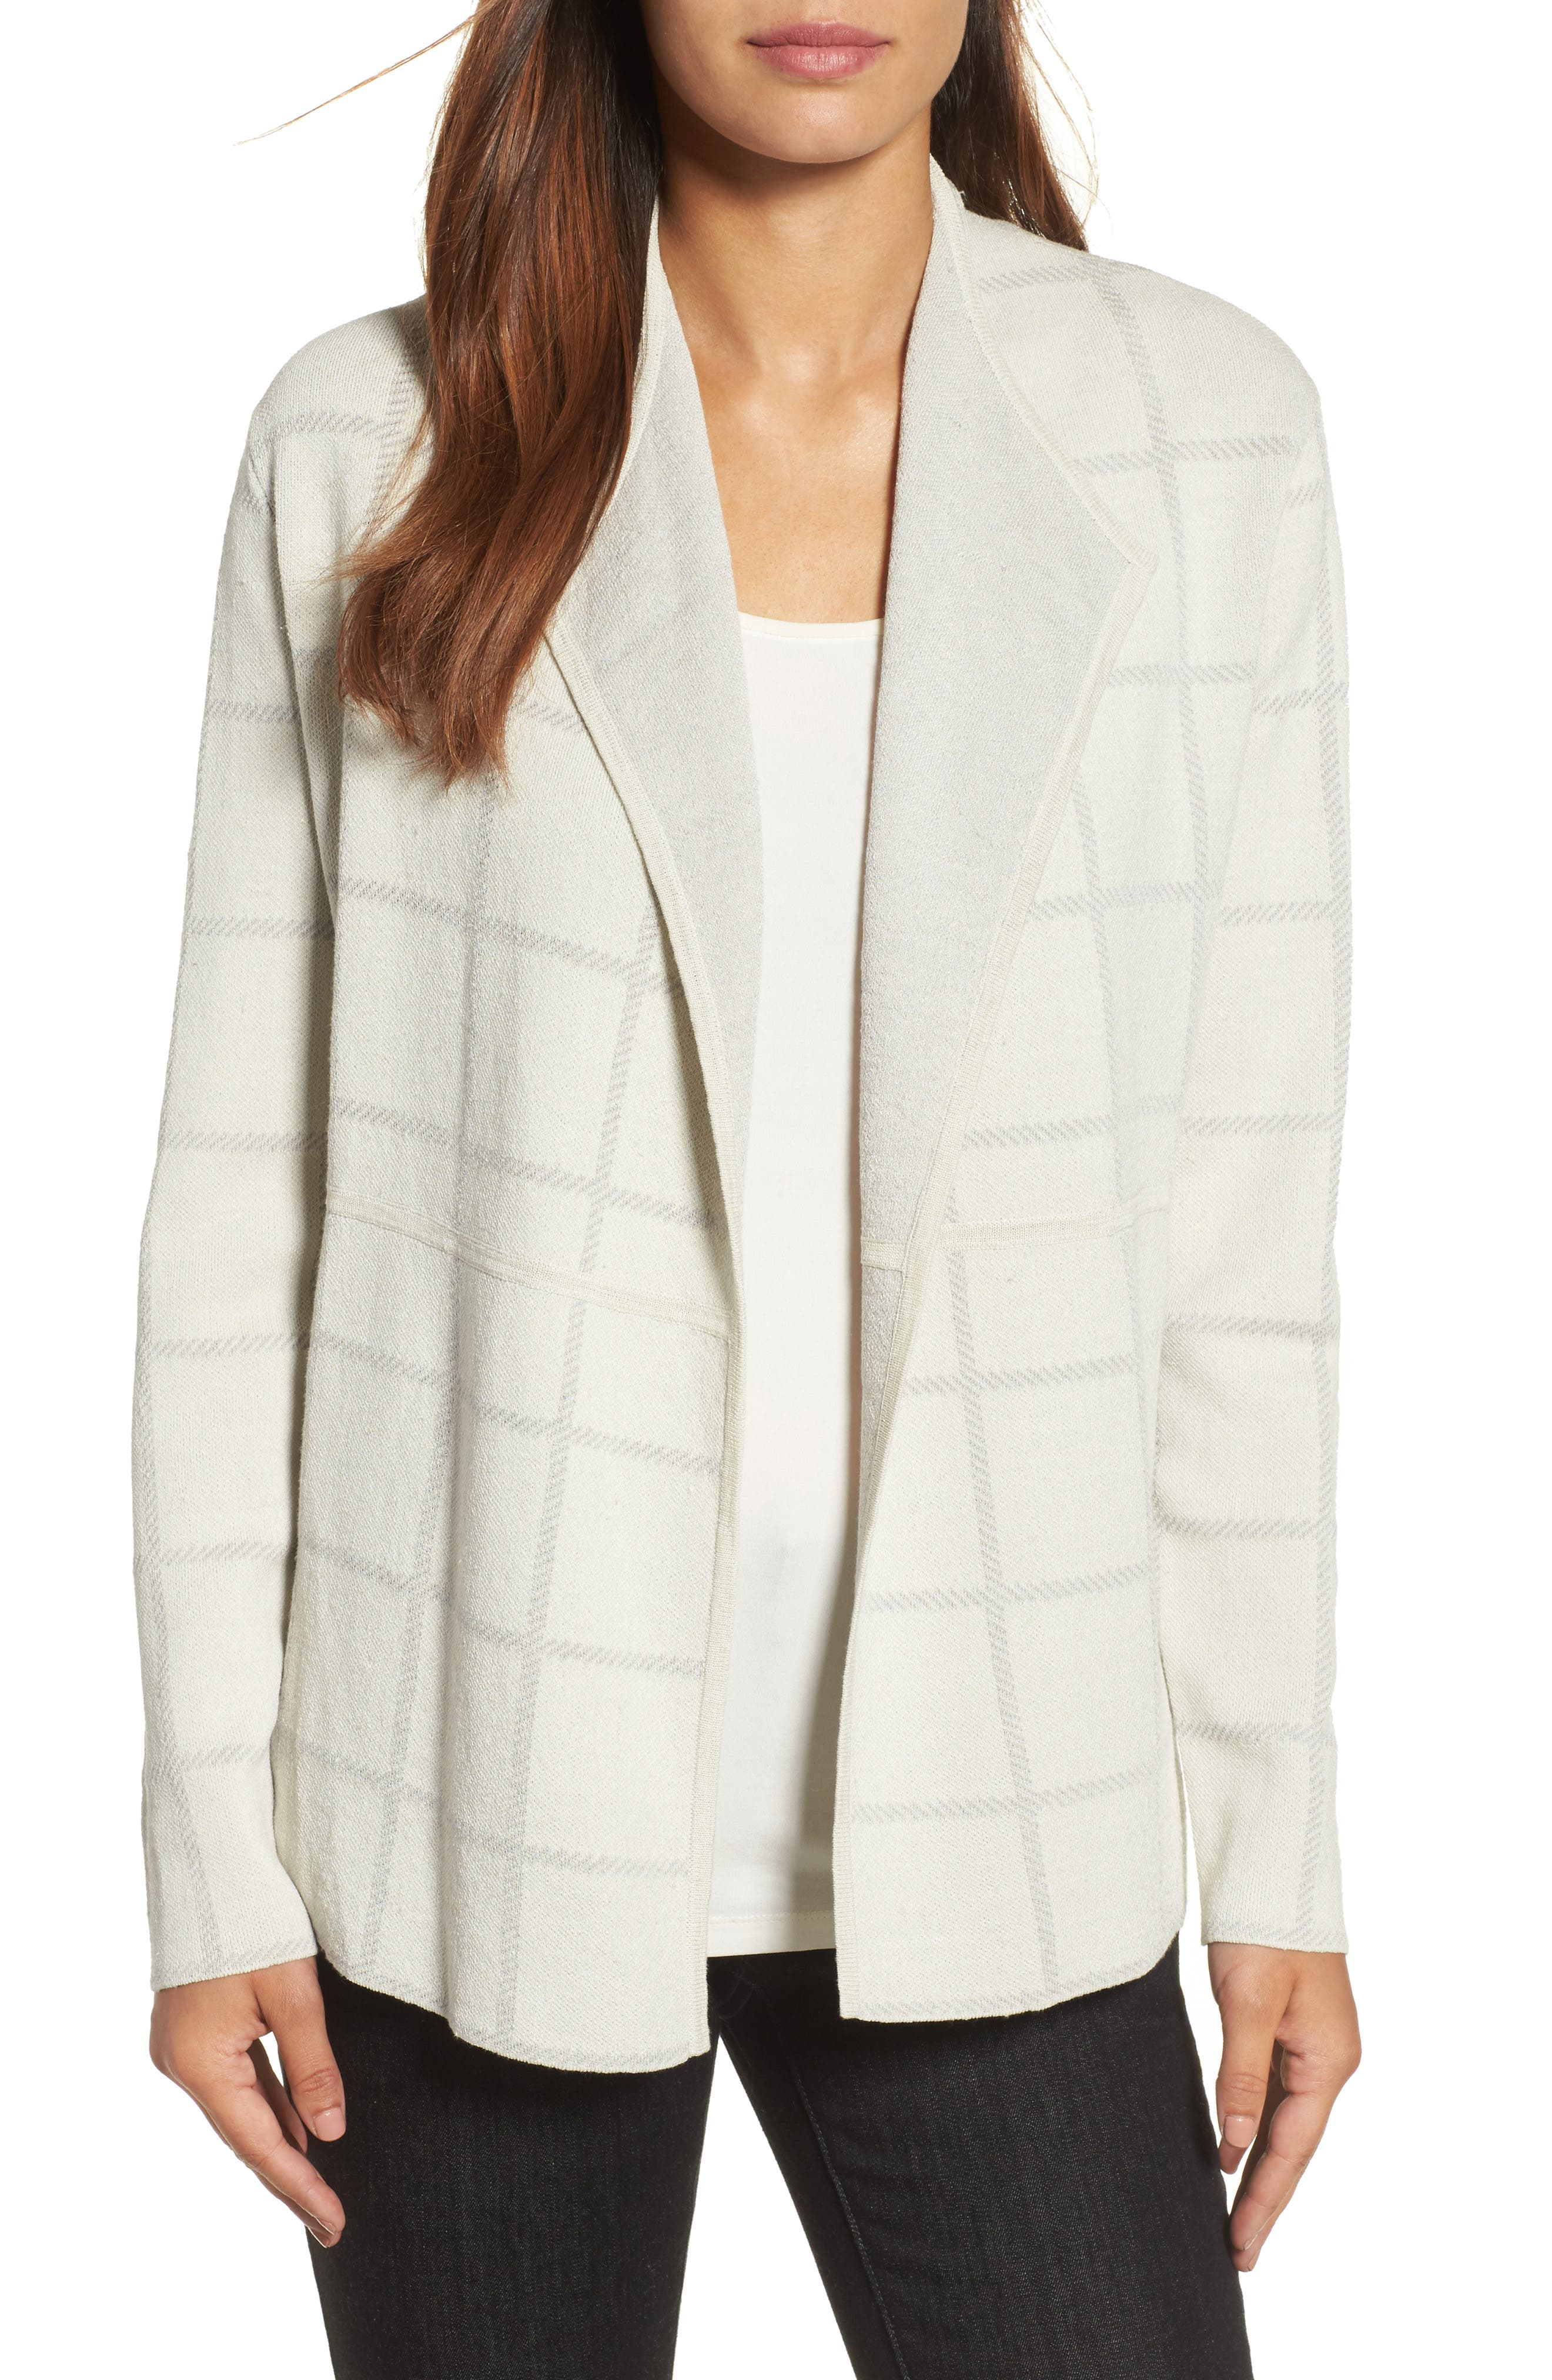 Eileen Fisher Linen Blend Angle Front Cardigan